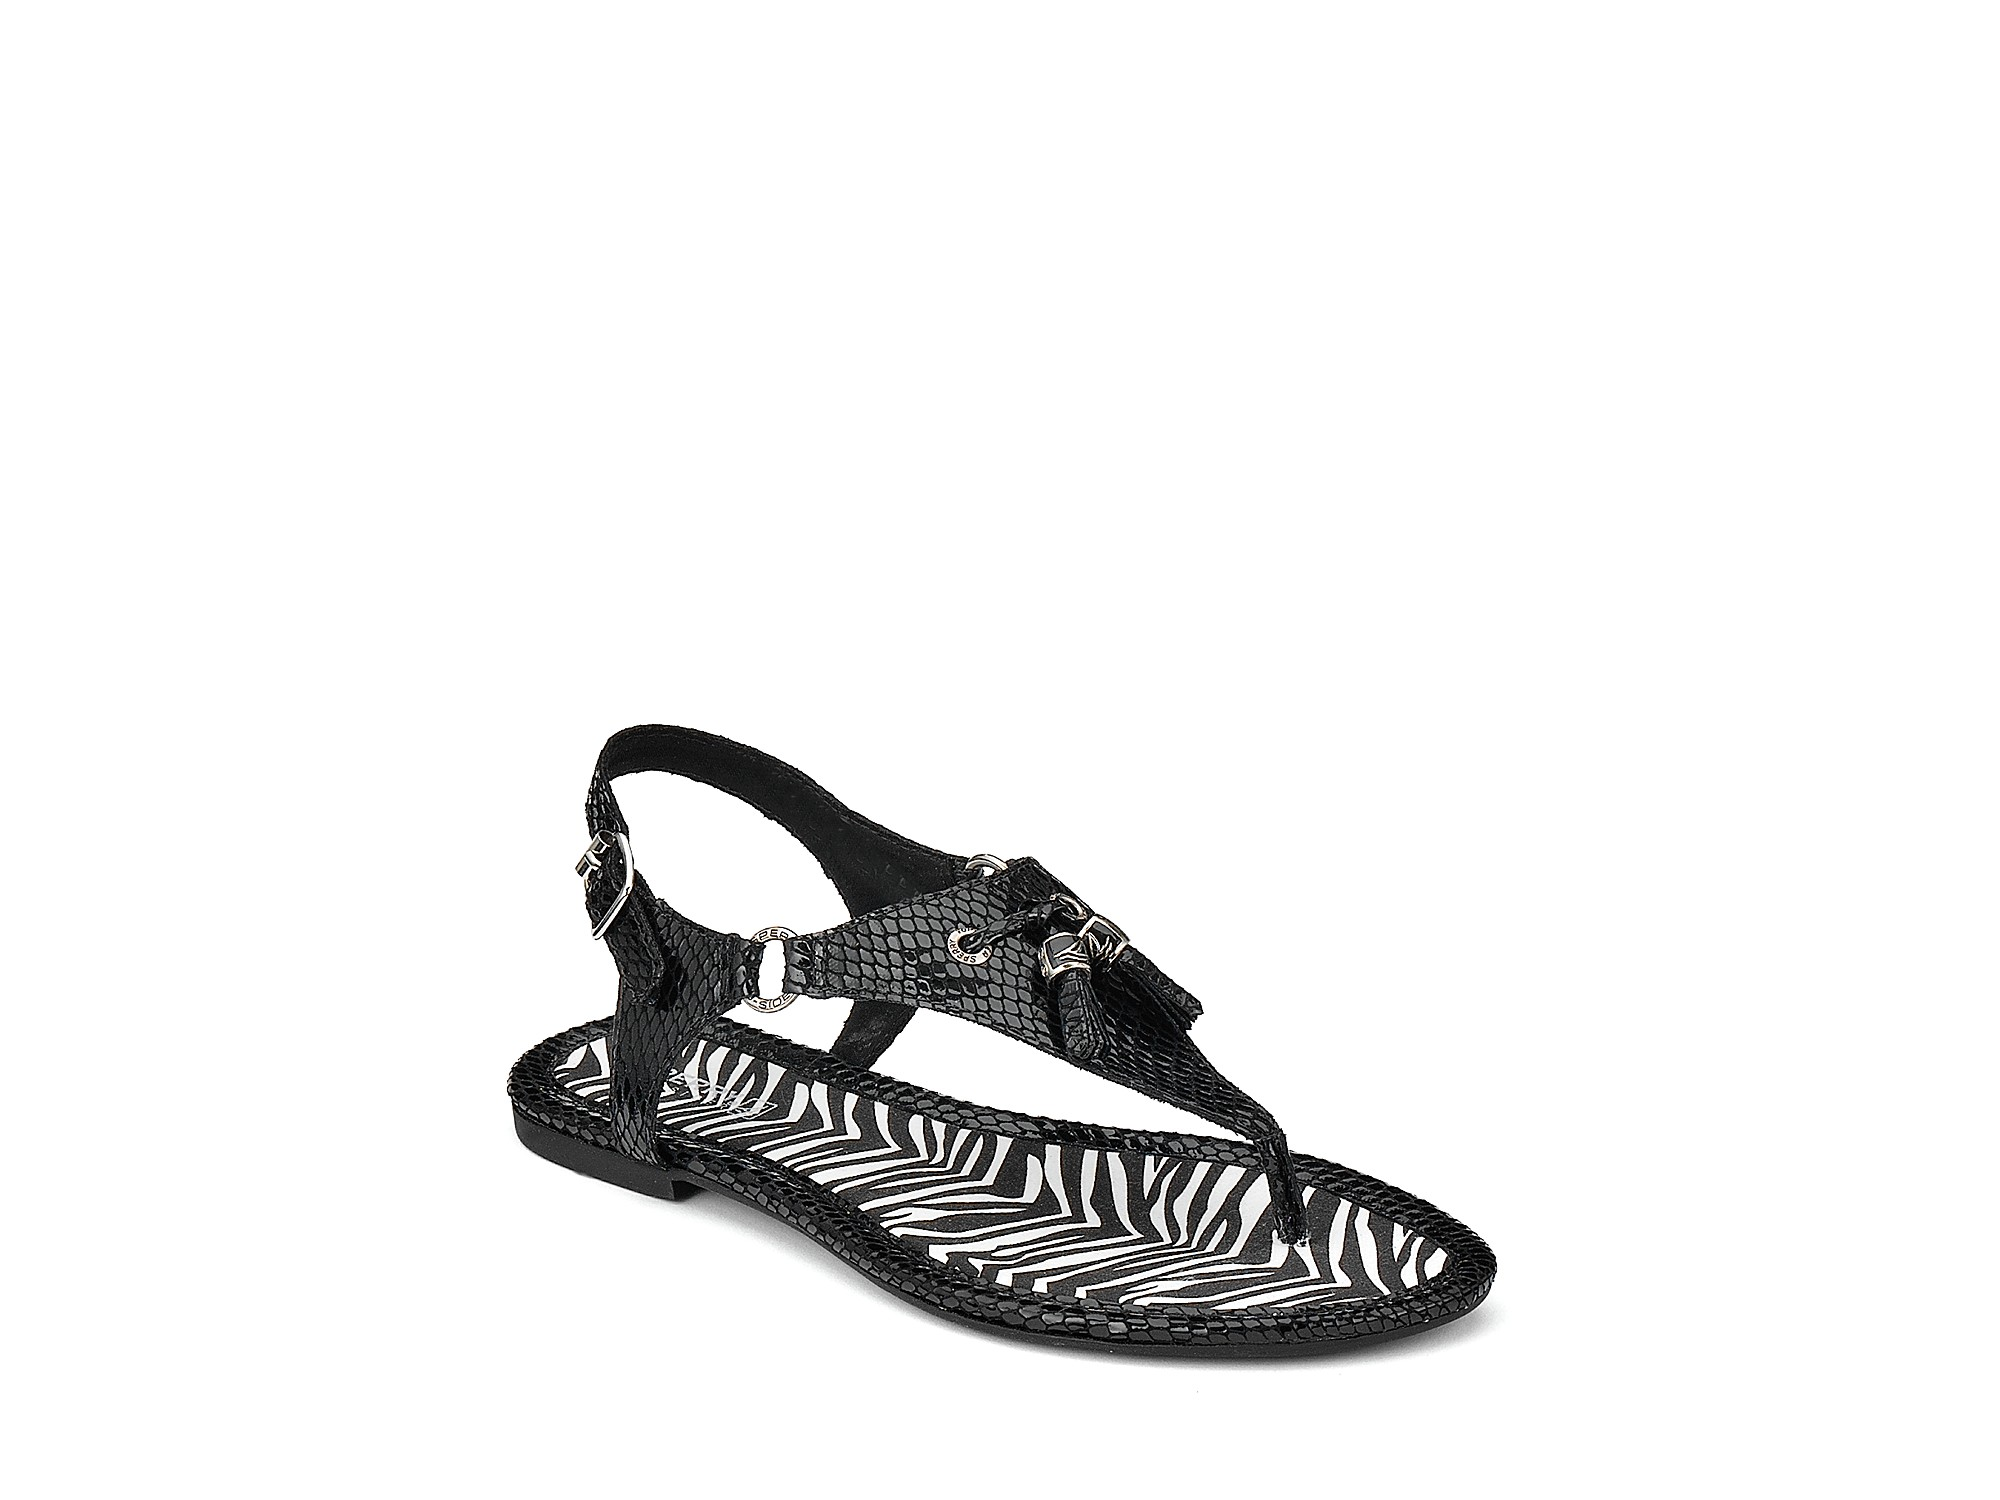 Sperry Top Sider Sandals Venture Tassel Flat In Black